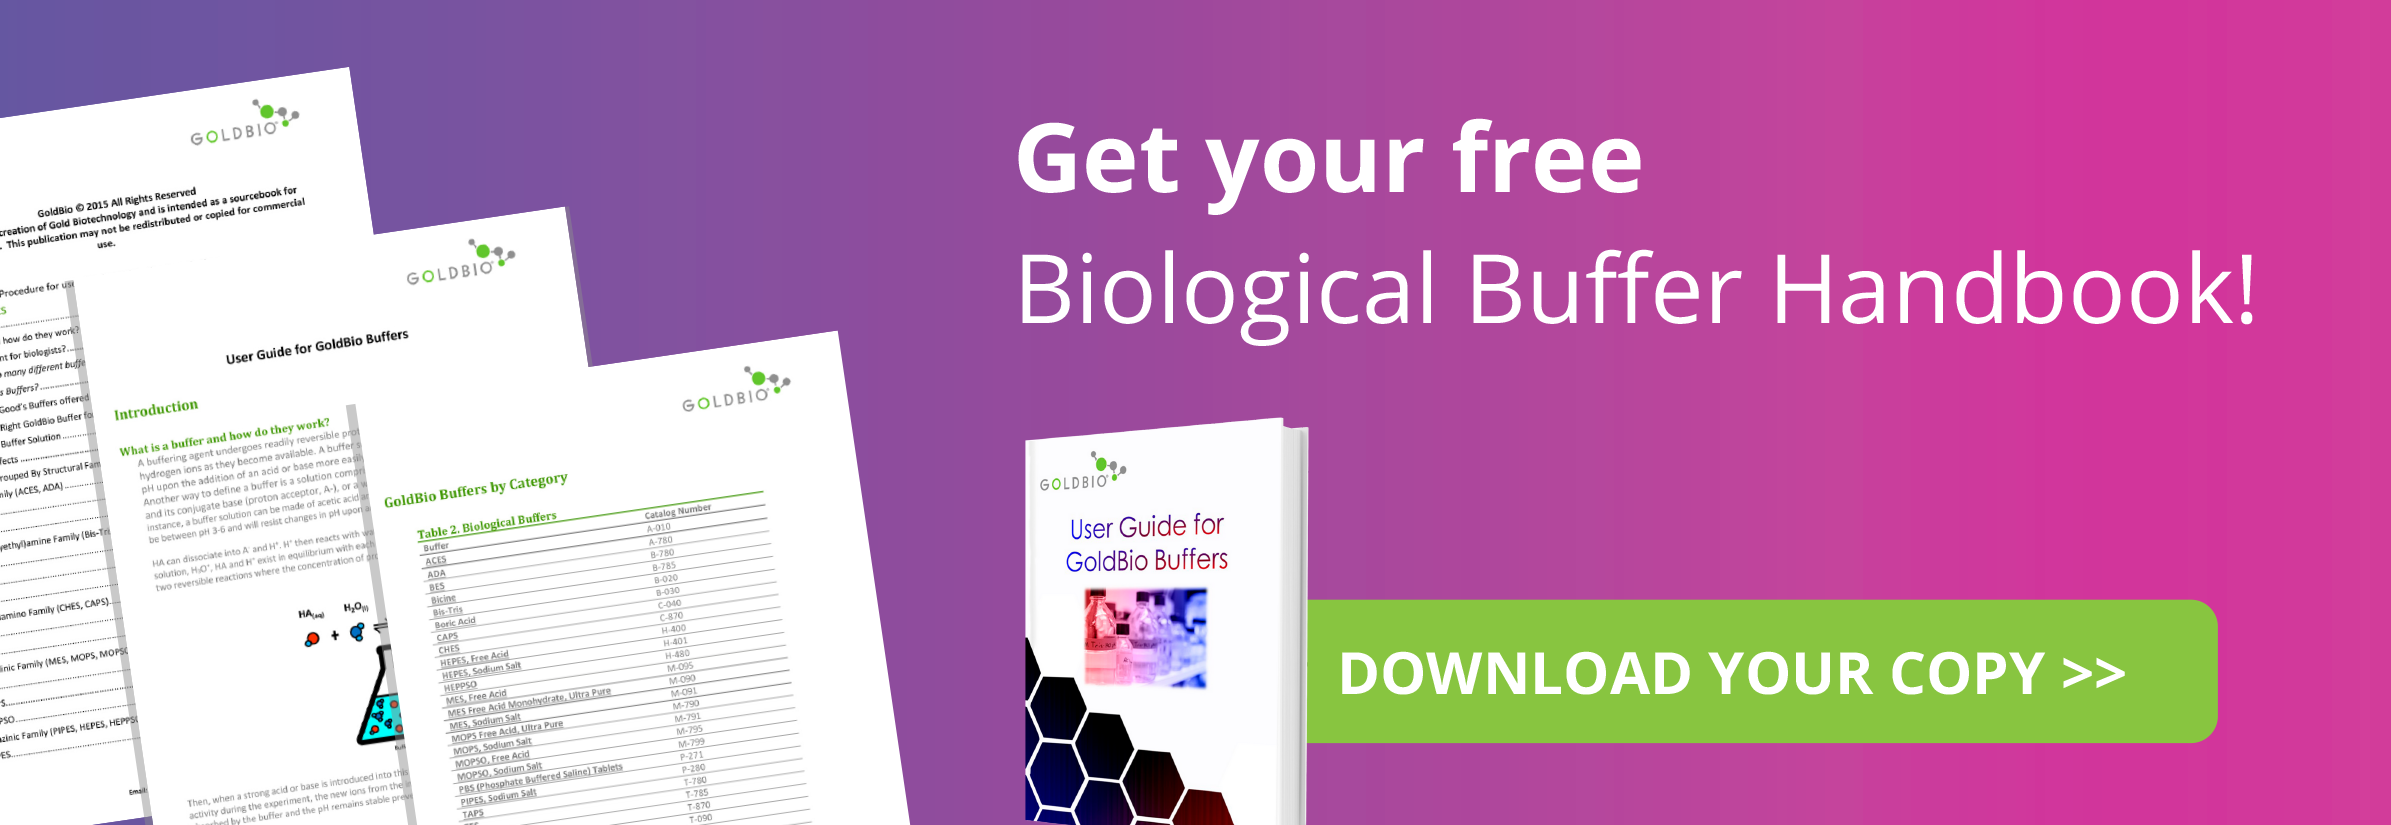 free biological buffer handbook download